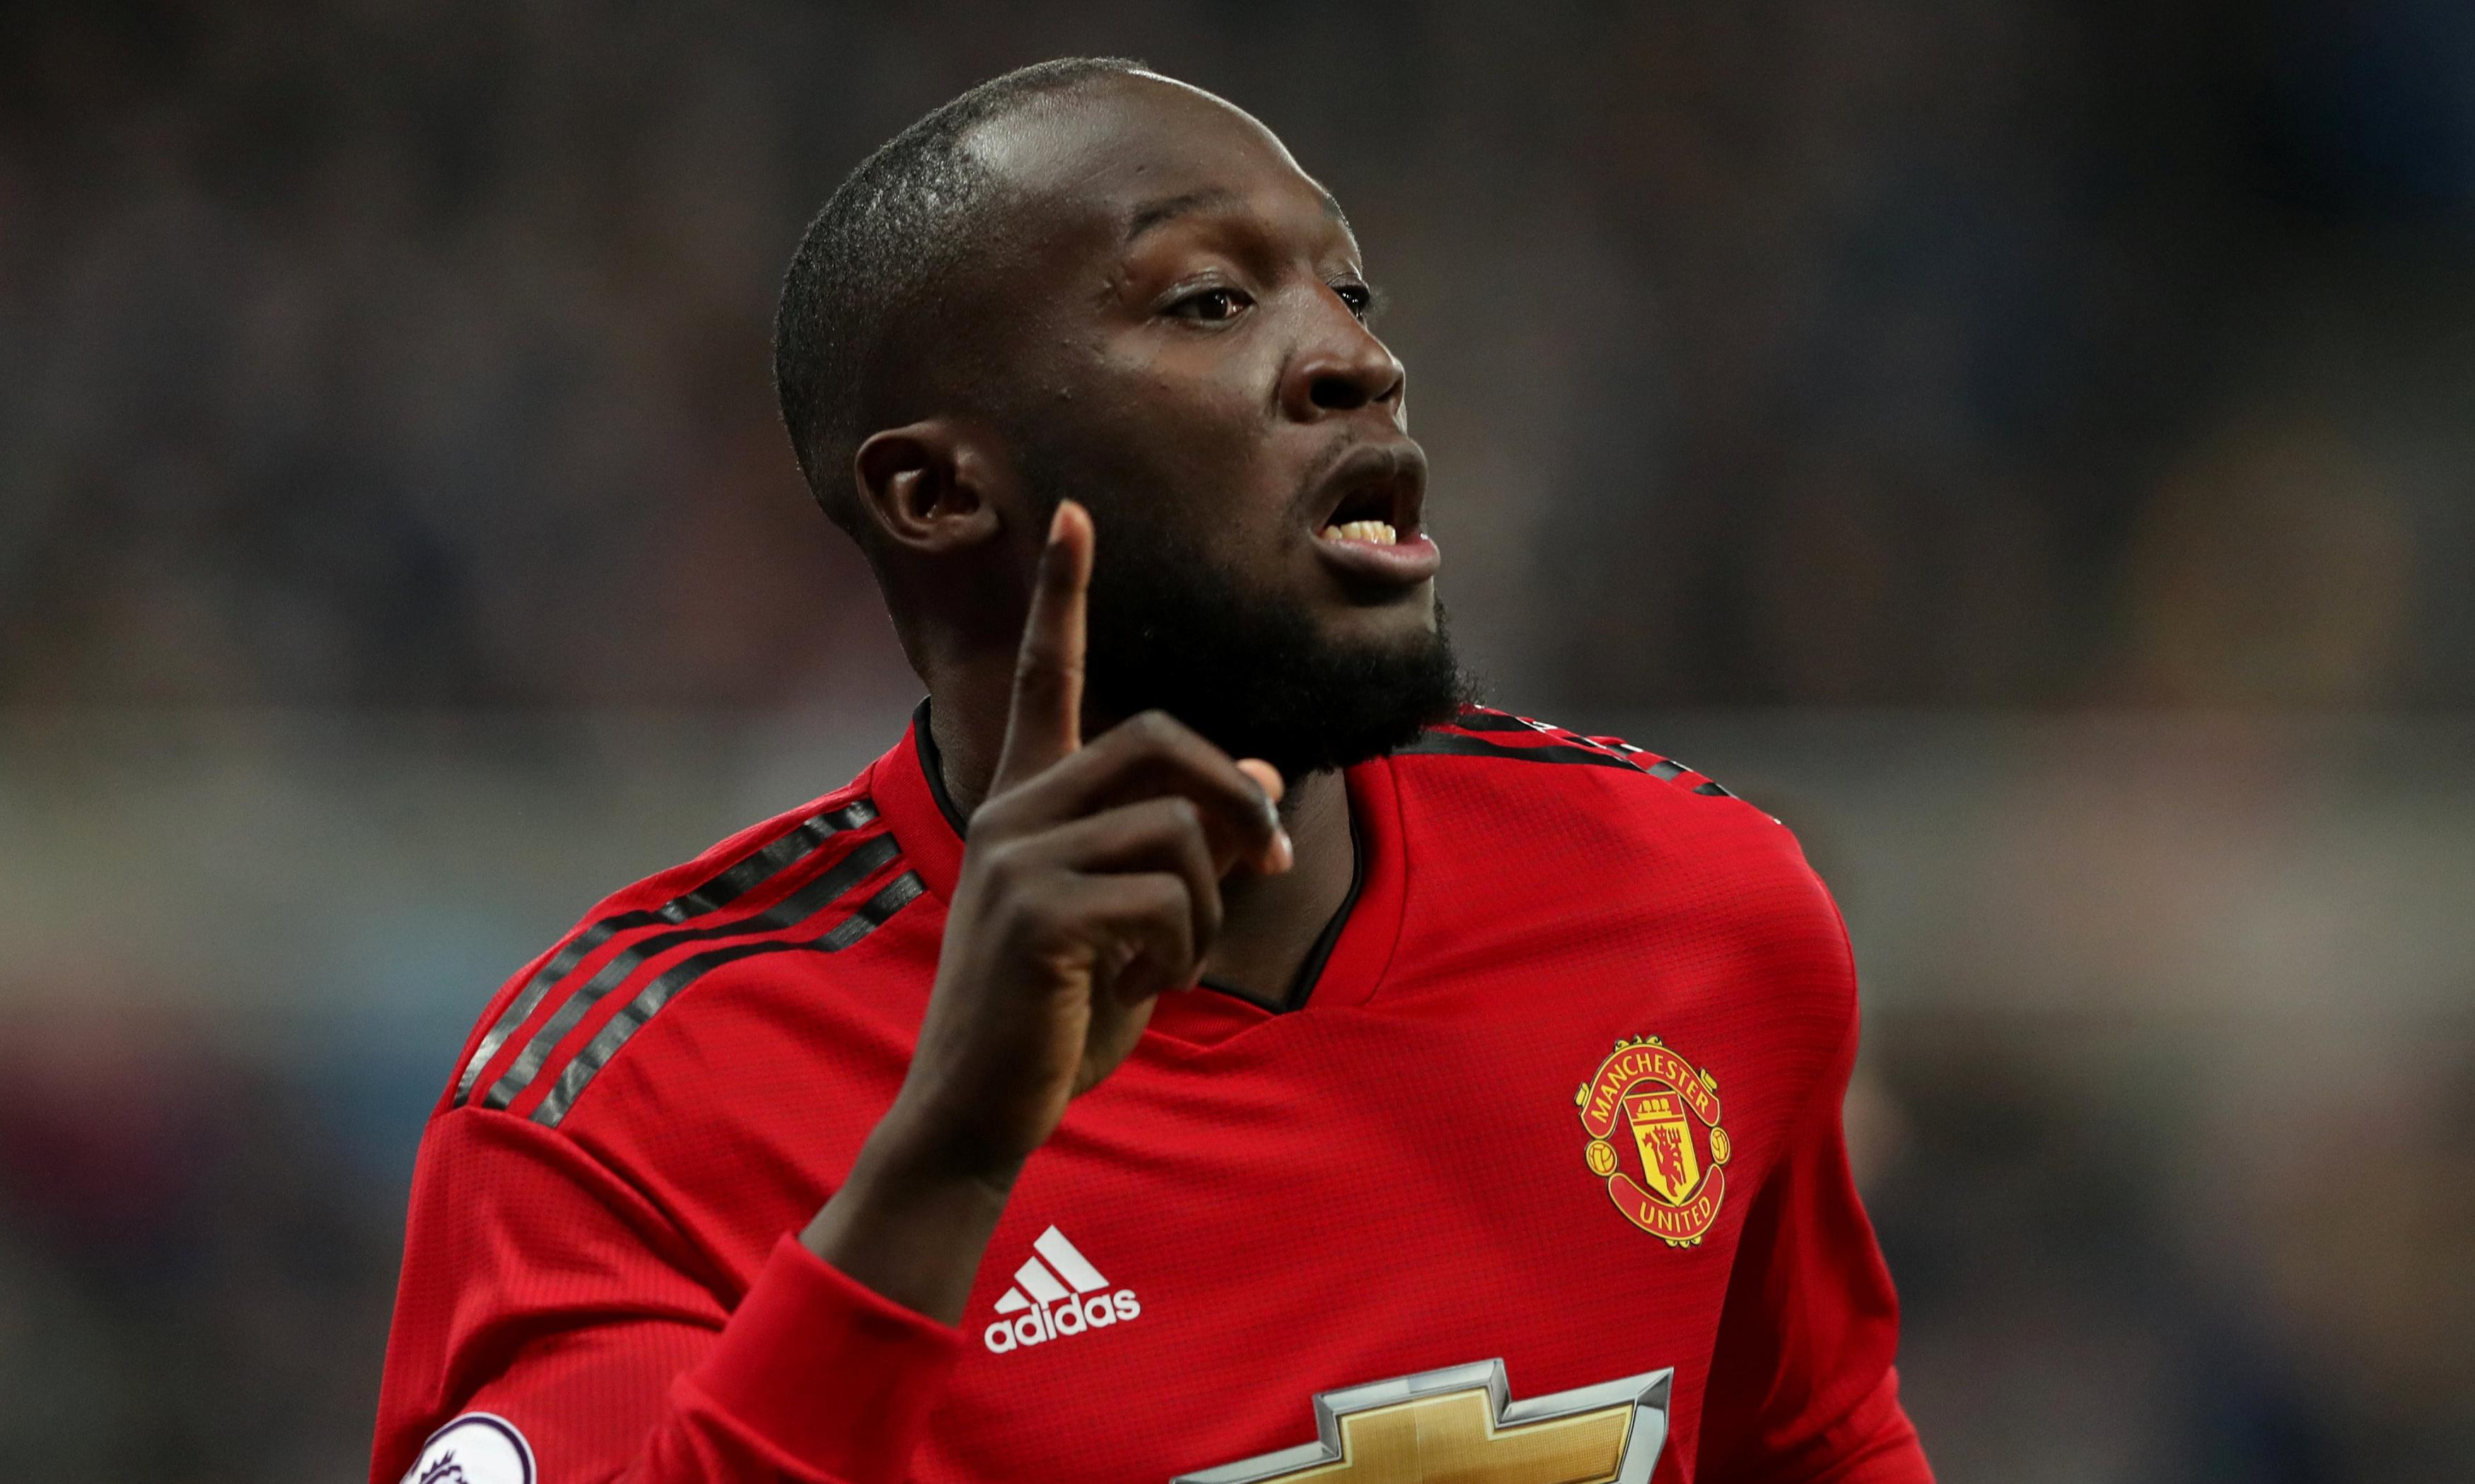 Internazionale to step up efforts to sign Romelu Lukaku with £62.8m offer